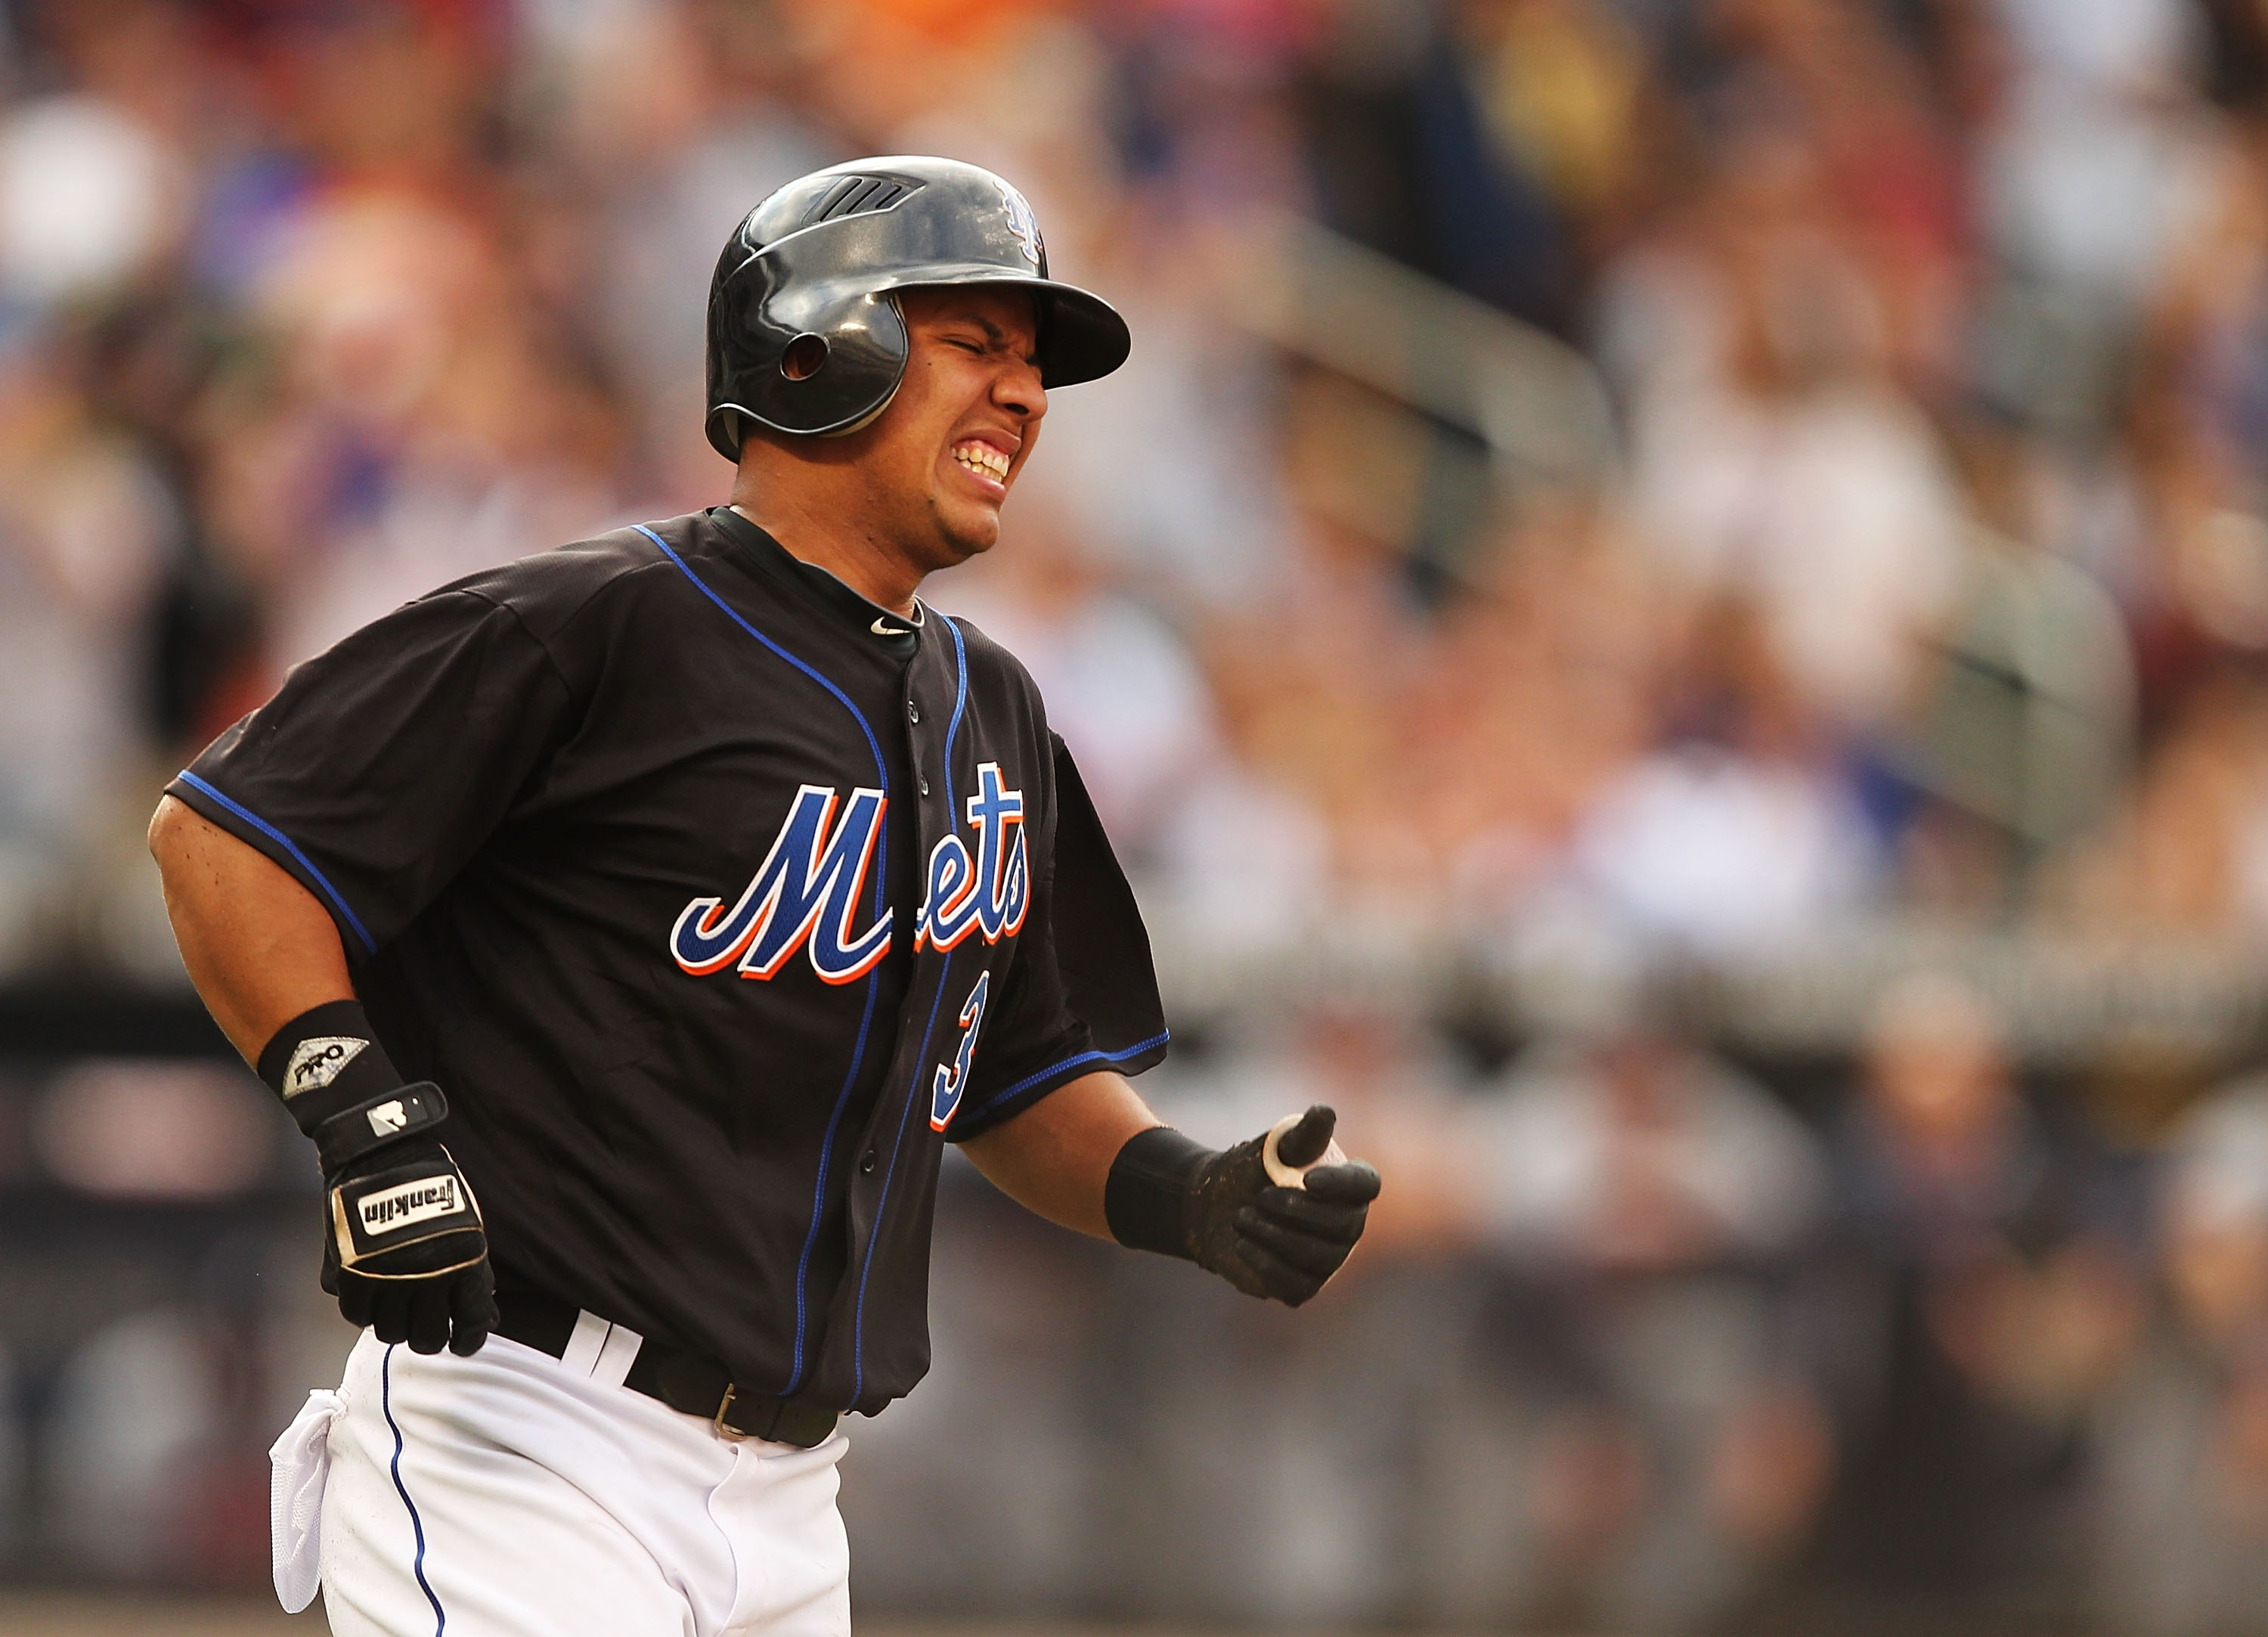 NEW YORK - SEPTEMBER 18:  Luis Hernandez #3 of the New York Mets winces in pain while rounding the bases after hitting a home run against  the Atlanta Braves in the fifth inning during their game on September 18, 2010 at Citi Field in the Flushing neighbo